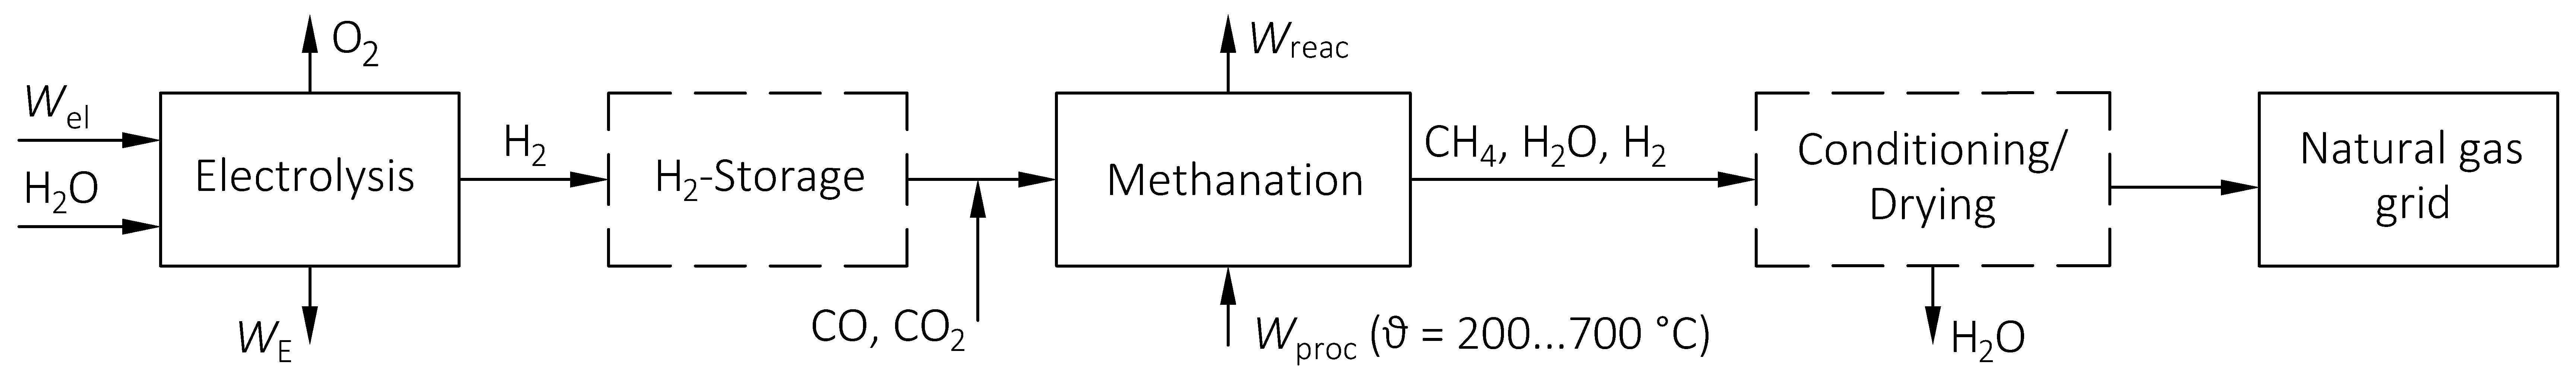 Figure 1: Scheme of the PtG-process with methanation following the electrolysis [1]